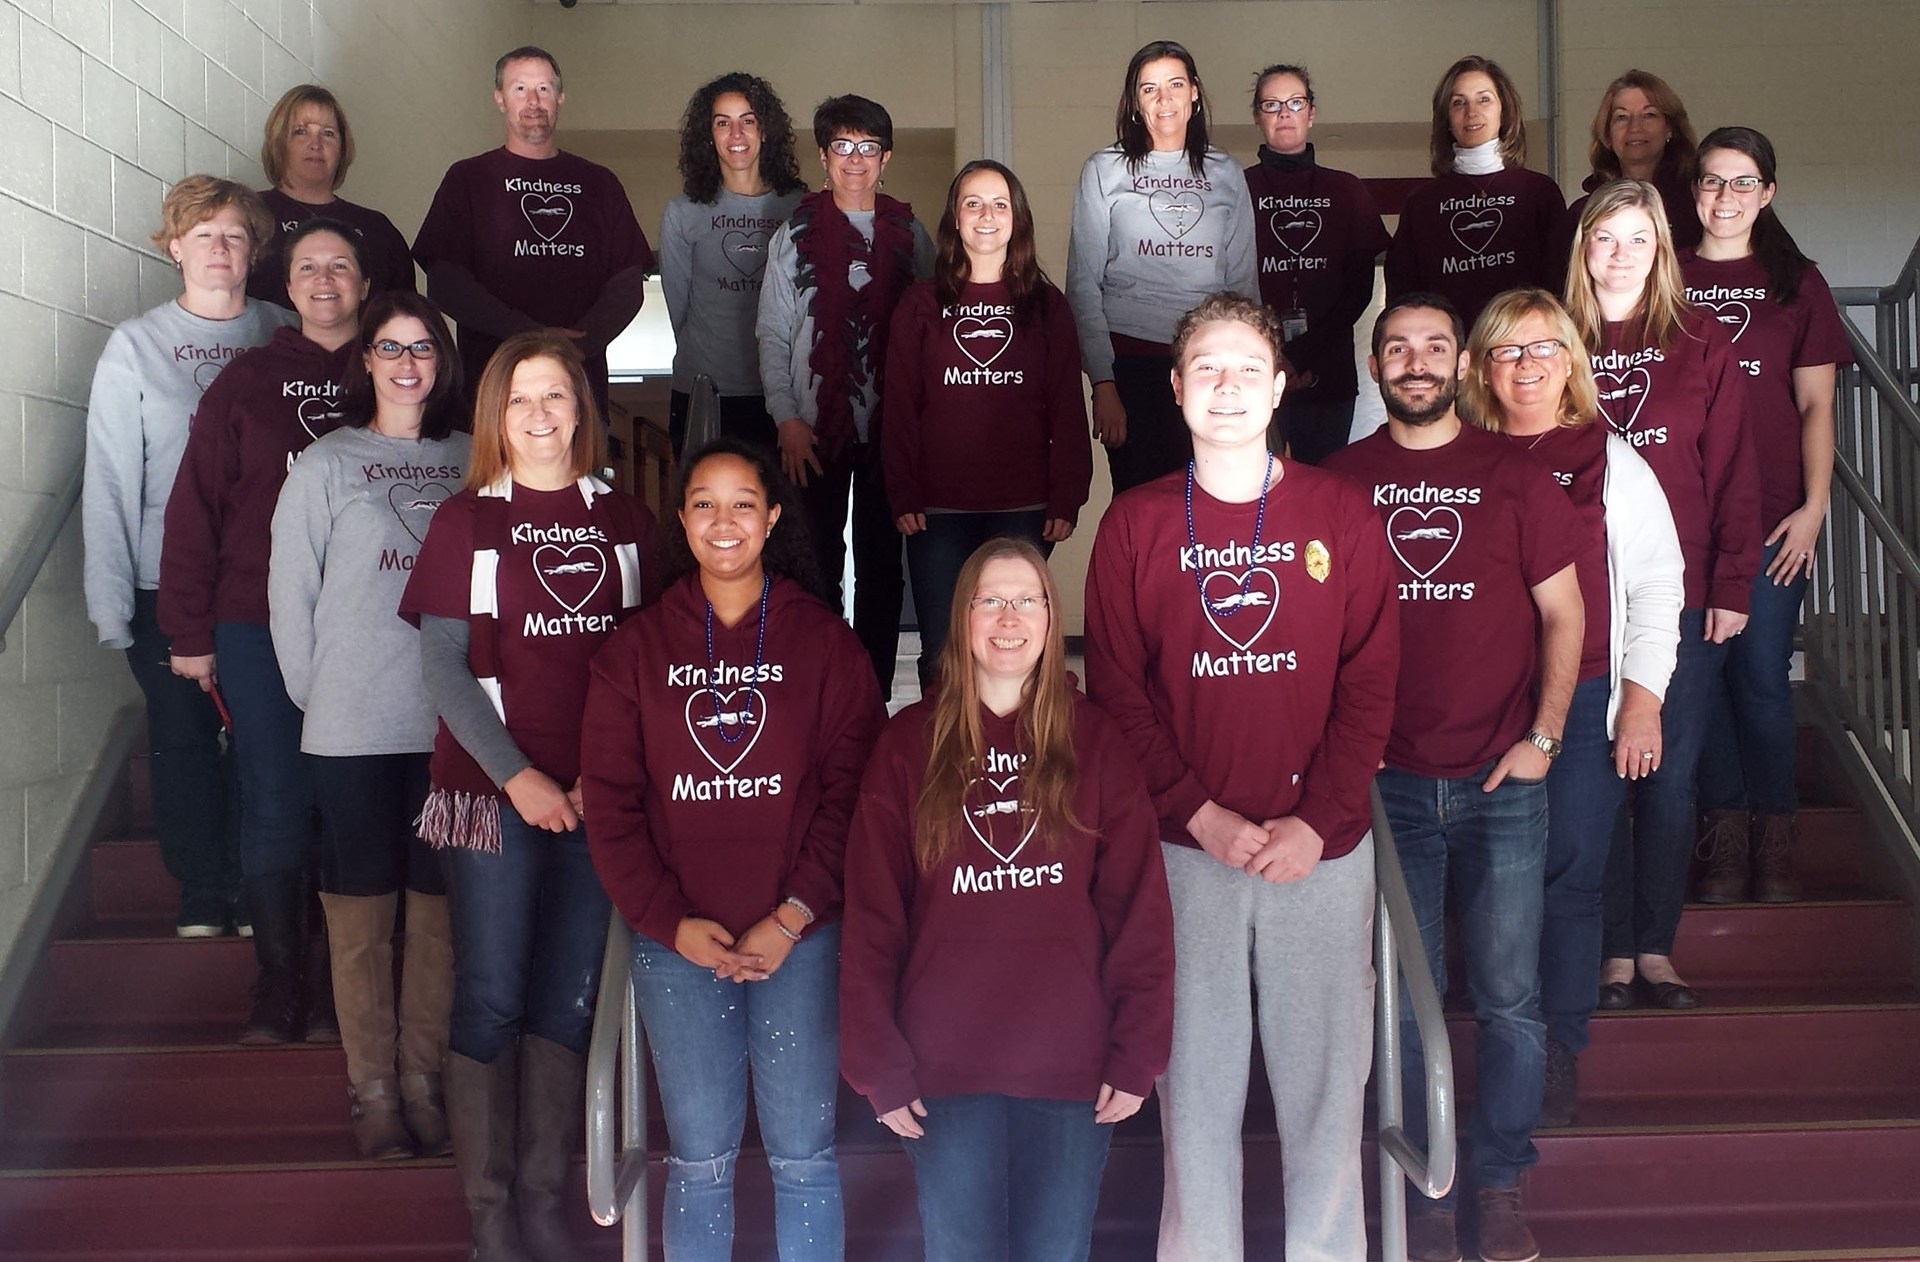 Students and teachers wearing kindness t-shirts form a heart on the stairs at Naugatuck High School